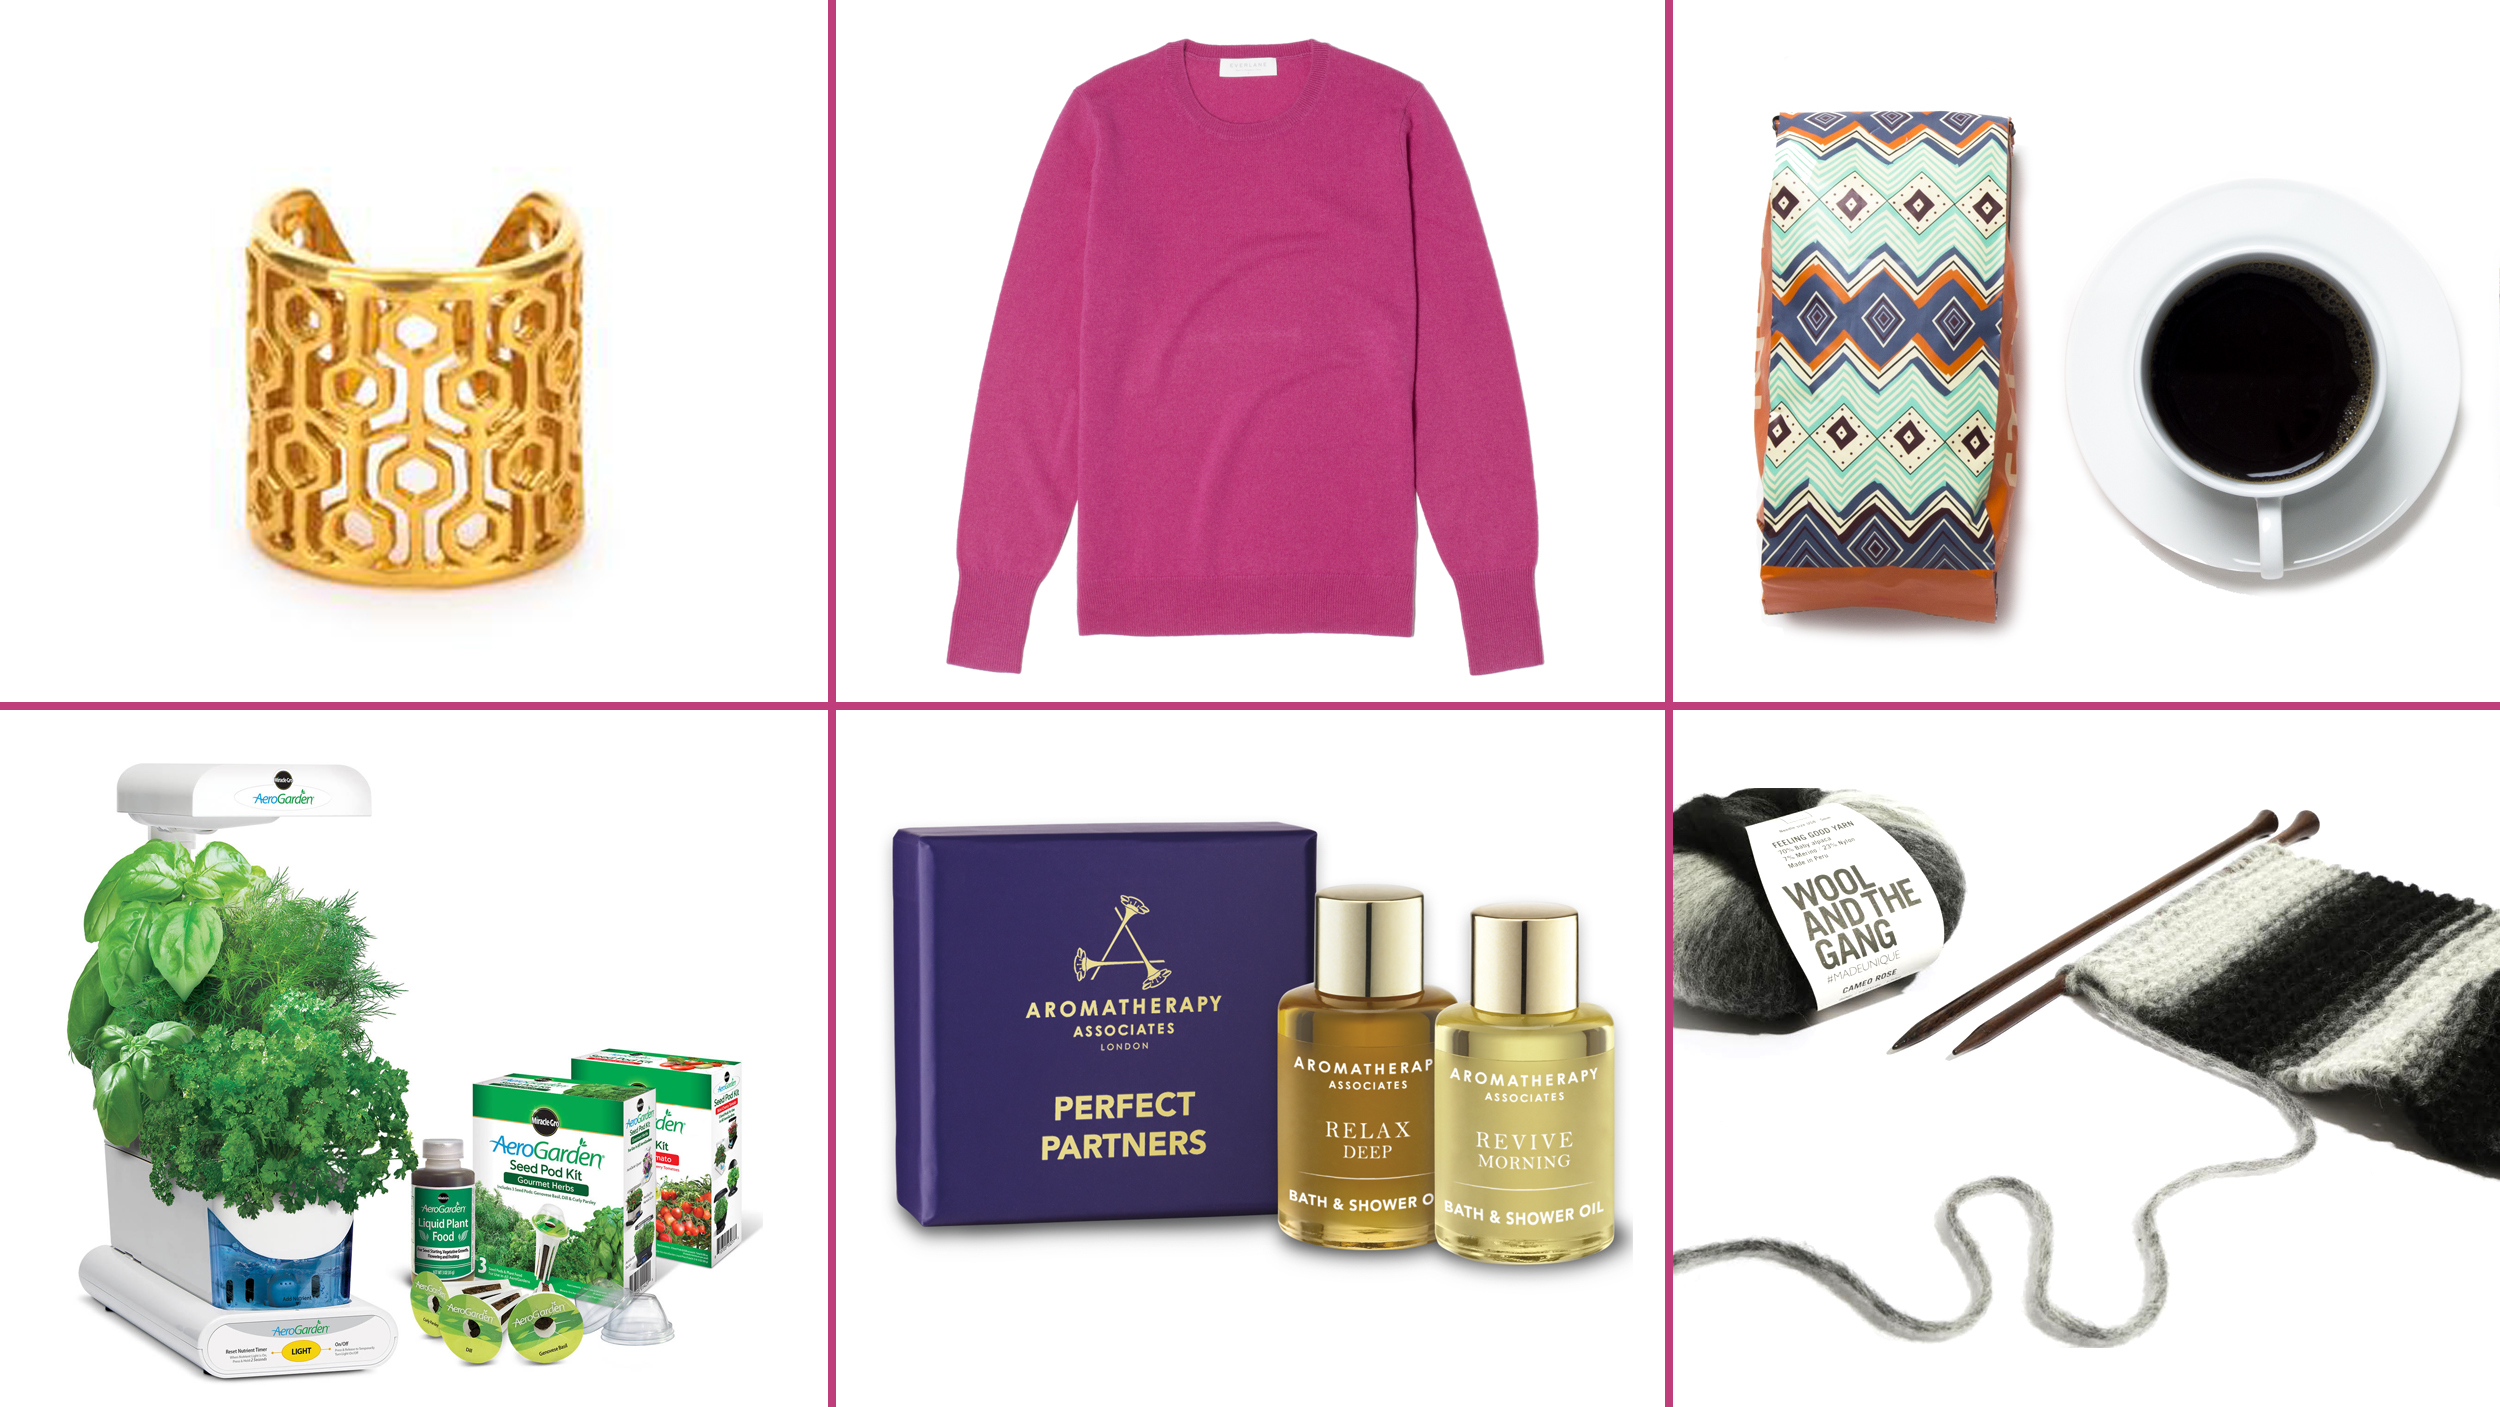 Top gifts for Christmas 2016: Gift ideas for mom from daughter